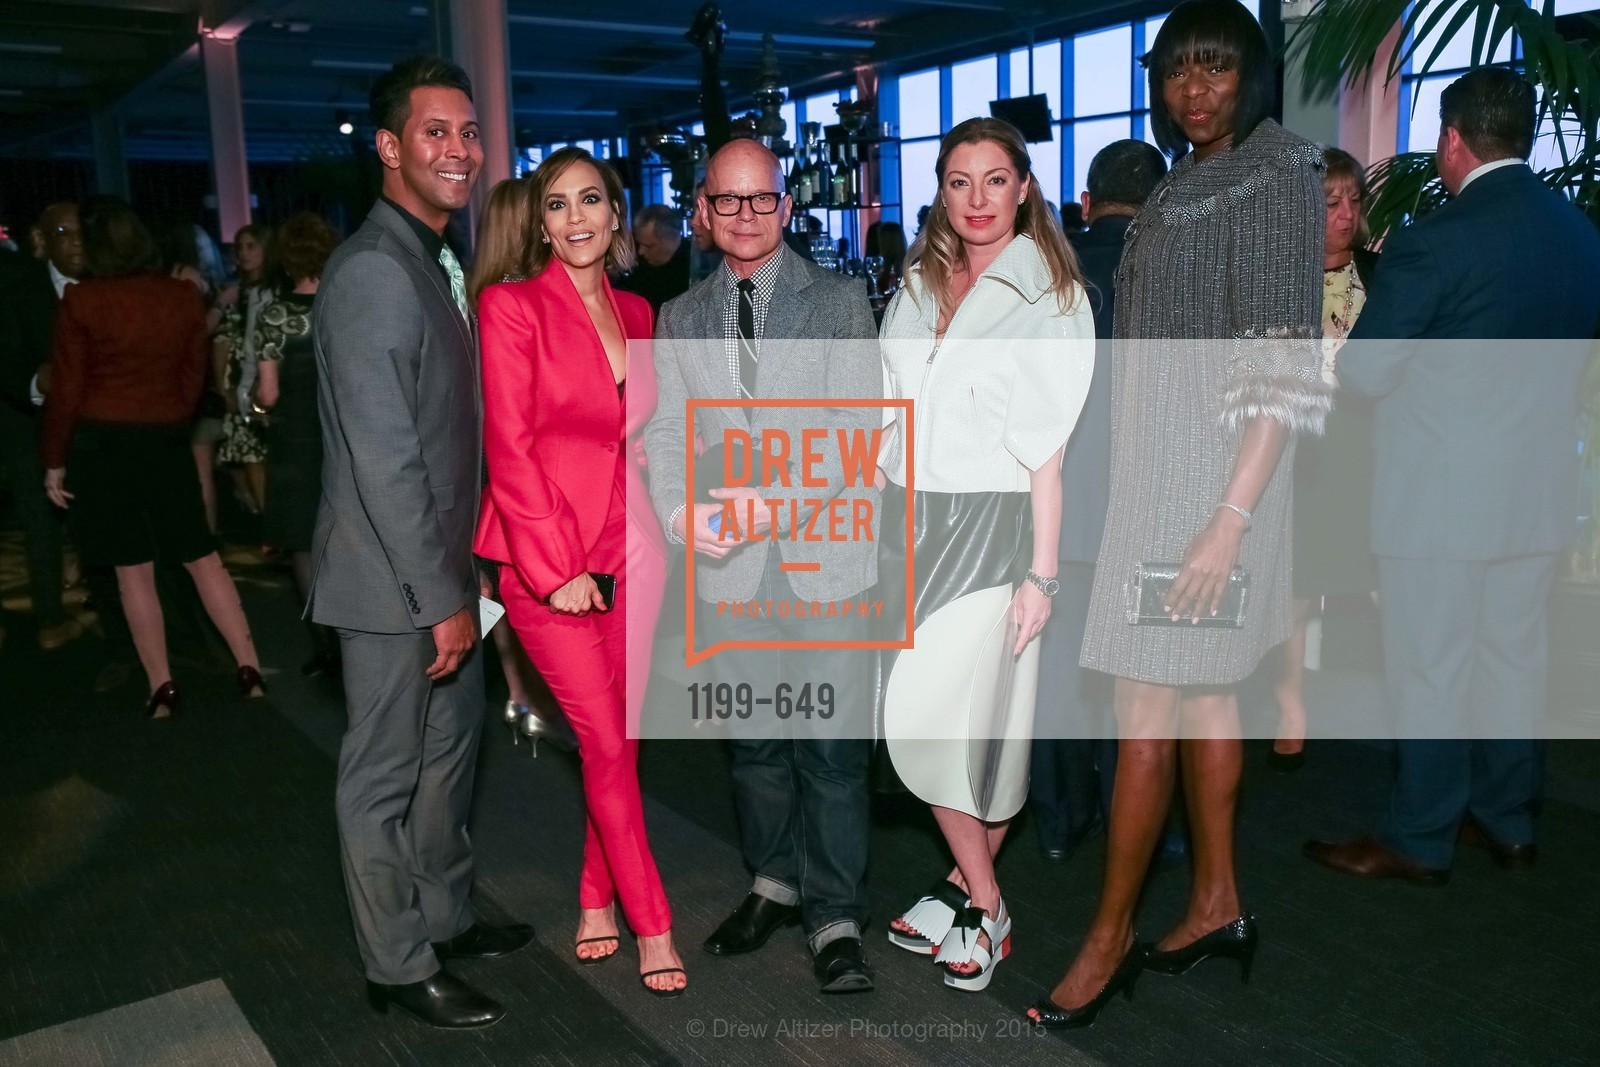 Emillio Mesa, Lora DuBain, Kevin Seffums, Sonya Molodetskaya, Kelly E. Carter, Fashion Forward: An Evening with Erdem presented by SF Opera Guild and Saks Fifth Avenue, Pier 27. Pier 27, The Embarcadero, March 25th, 2015,Drew Altizer, Drew Altizer Photography, full-service agency, private events, San Francisco photographer, photographer california